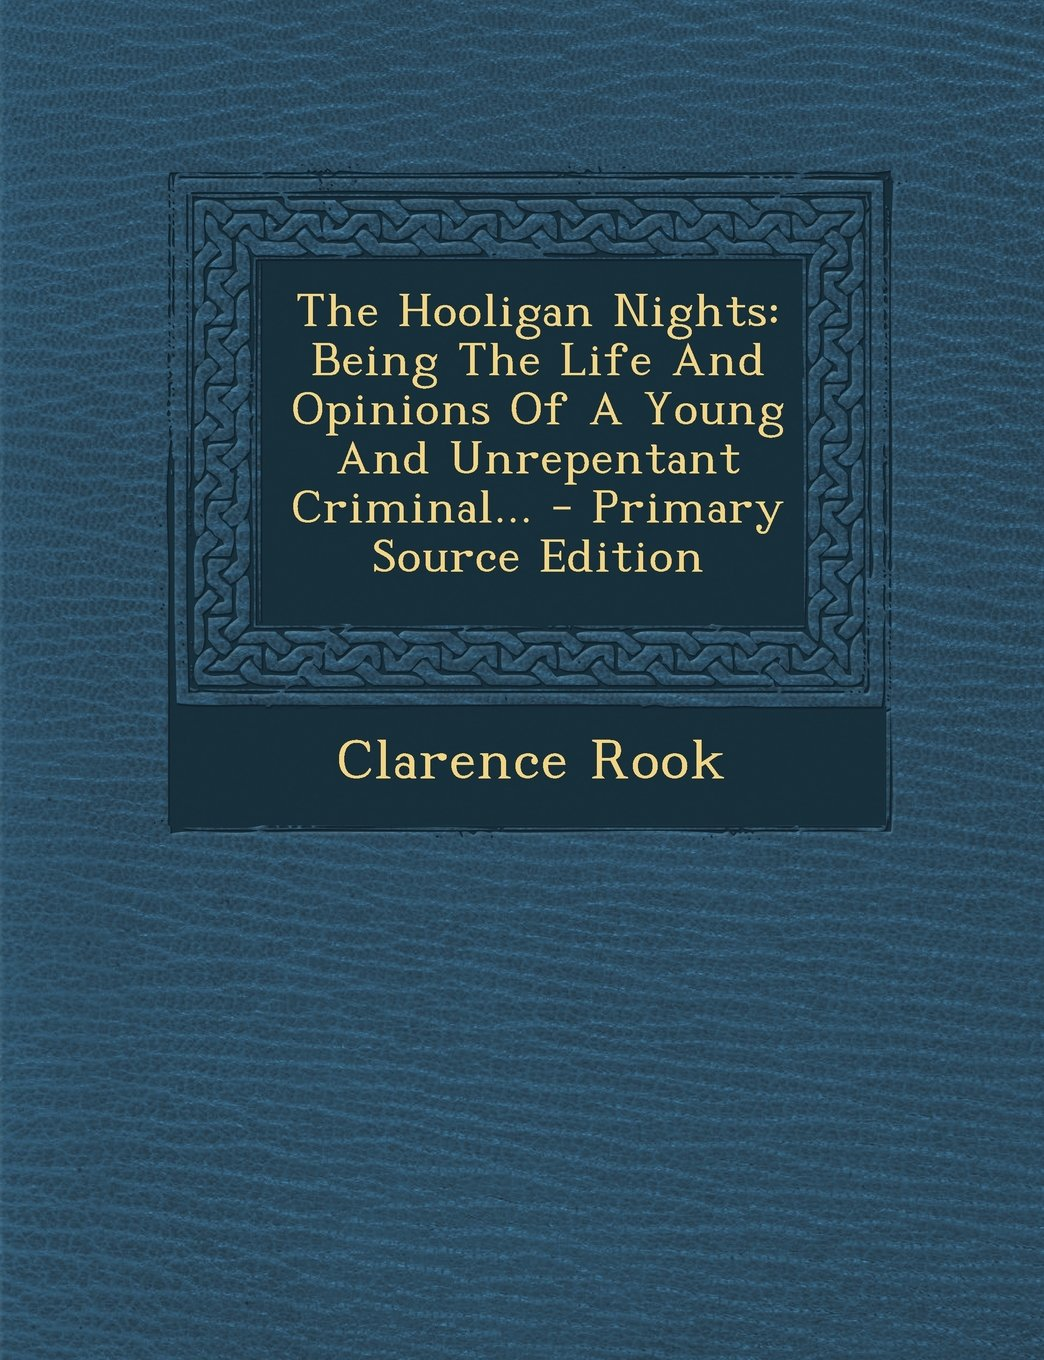 Read Online The Hooligan Nights: Being the Life and Opinions of a Young and Unrepentant Criminal... - Primary Source Edition PDF